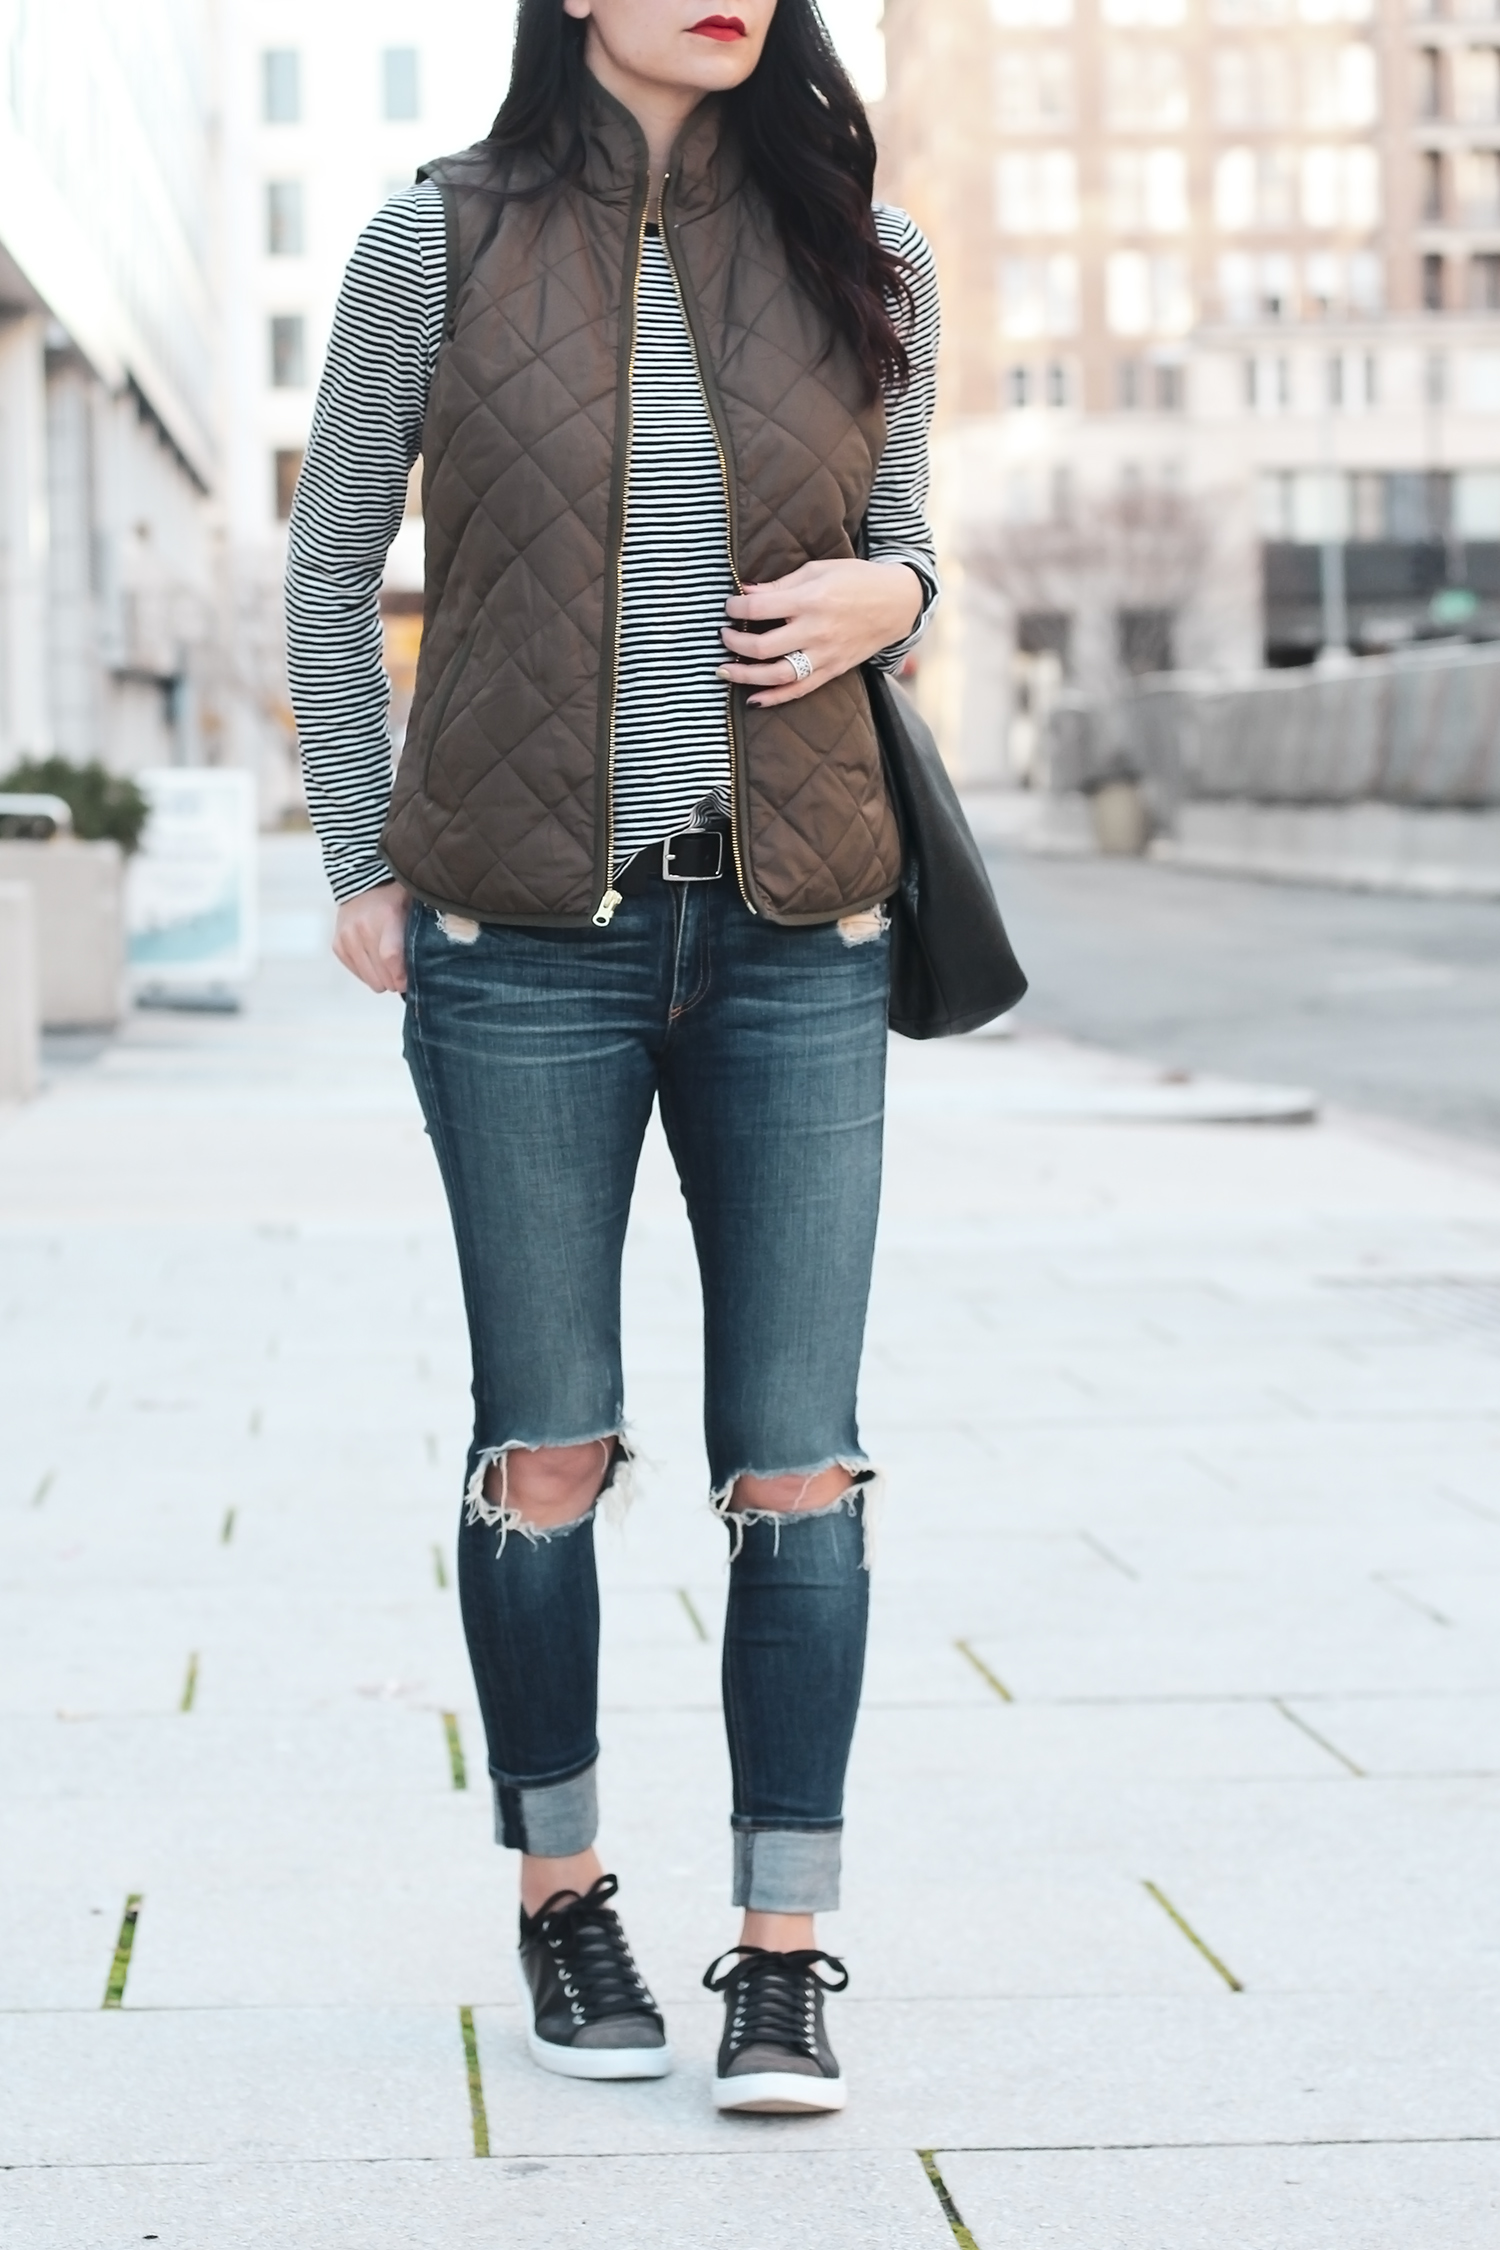 Distressed Jeans Outfit, Concealed Carry Outfit